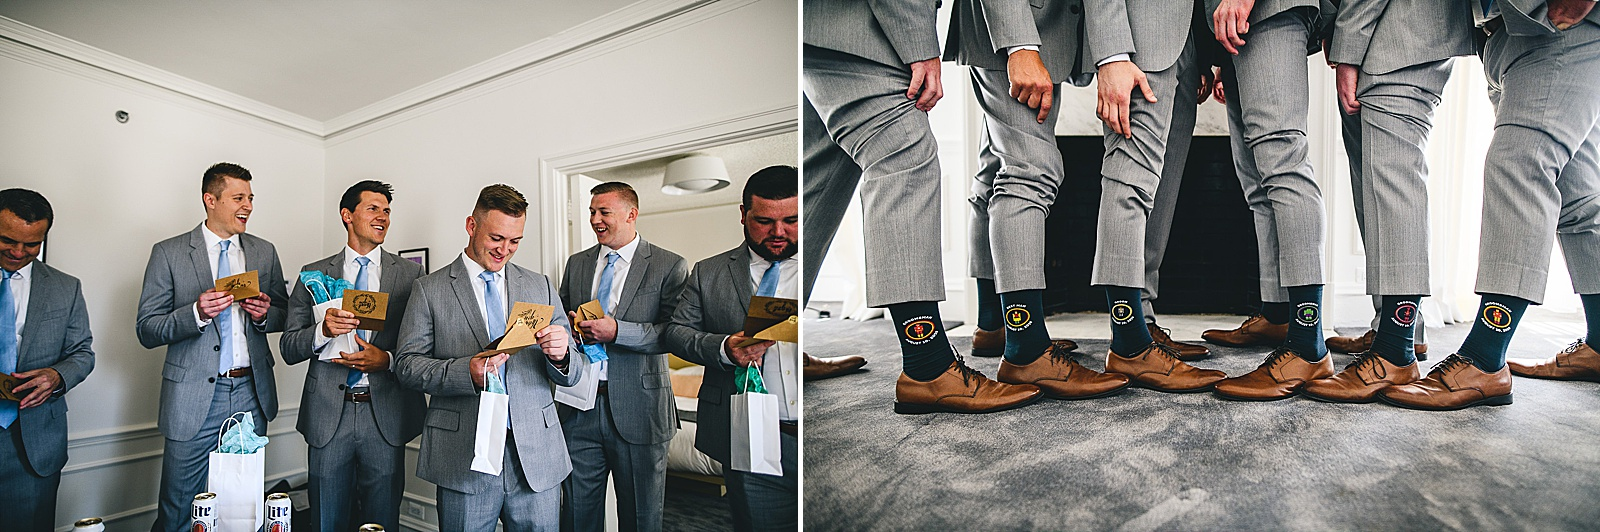 10 groomsmen having fun - Audrey + Jake's Beautiful Chicago Wedding at Chez